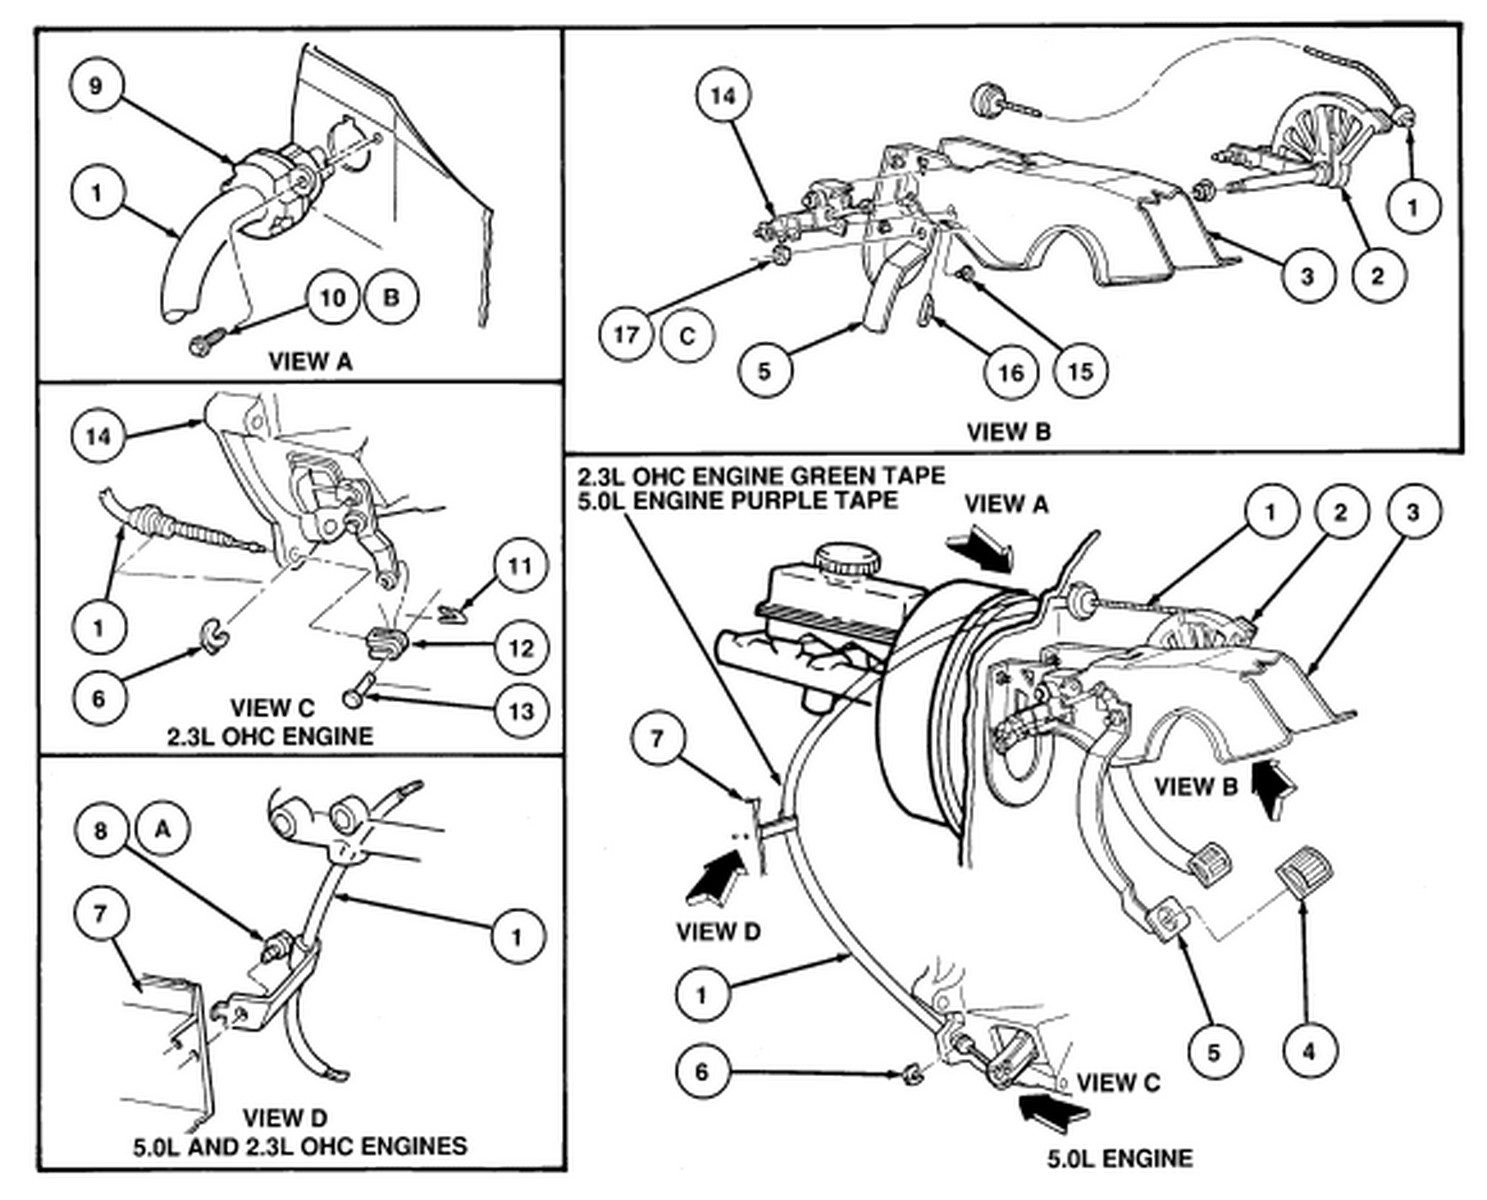 93 50 Mustang Has A Stiff Clutch Engaged Right At The Floor Level Ford Aspire Wiring Diagram Graphic